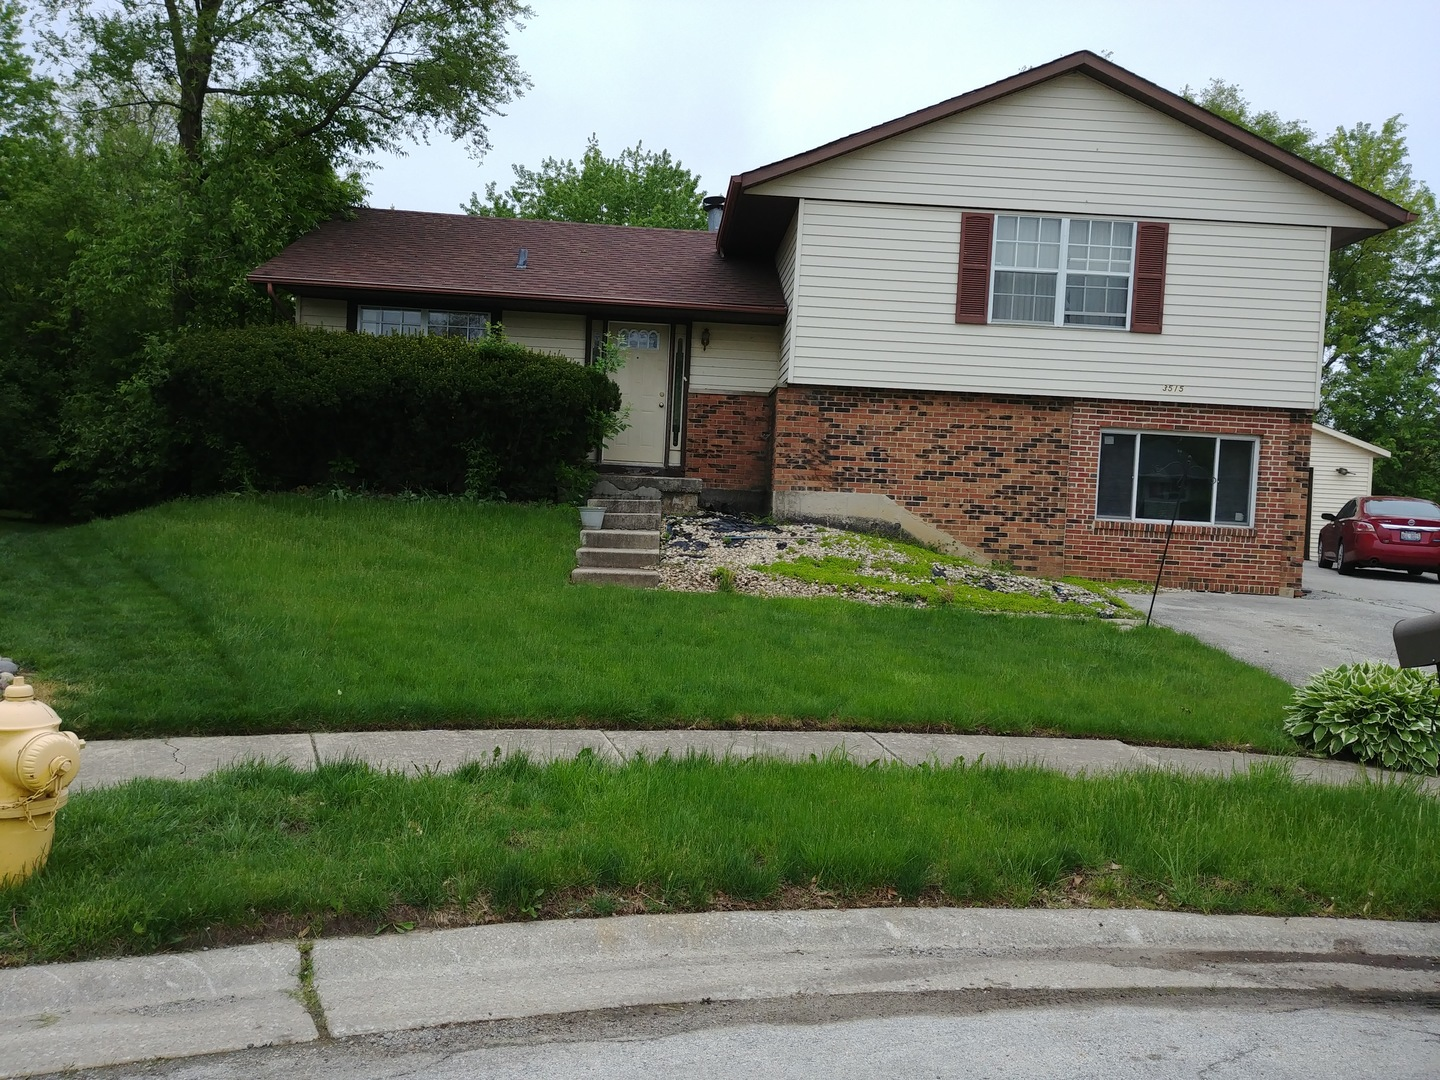 hazel crest singles over 50 Hazel crest, il single family homes for sale single family homes for sale in hazel crest, il have a median listing price of $99,900 and a price per square foot of $72.